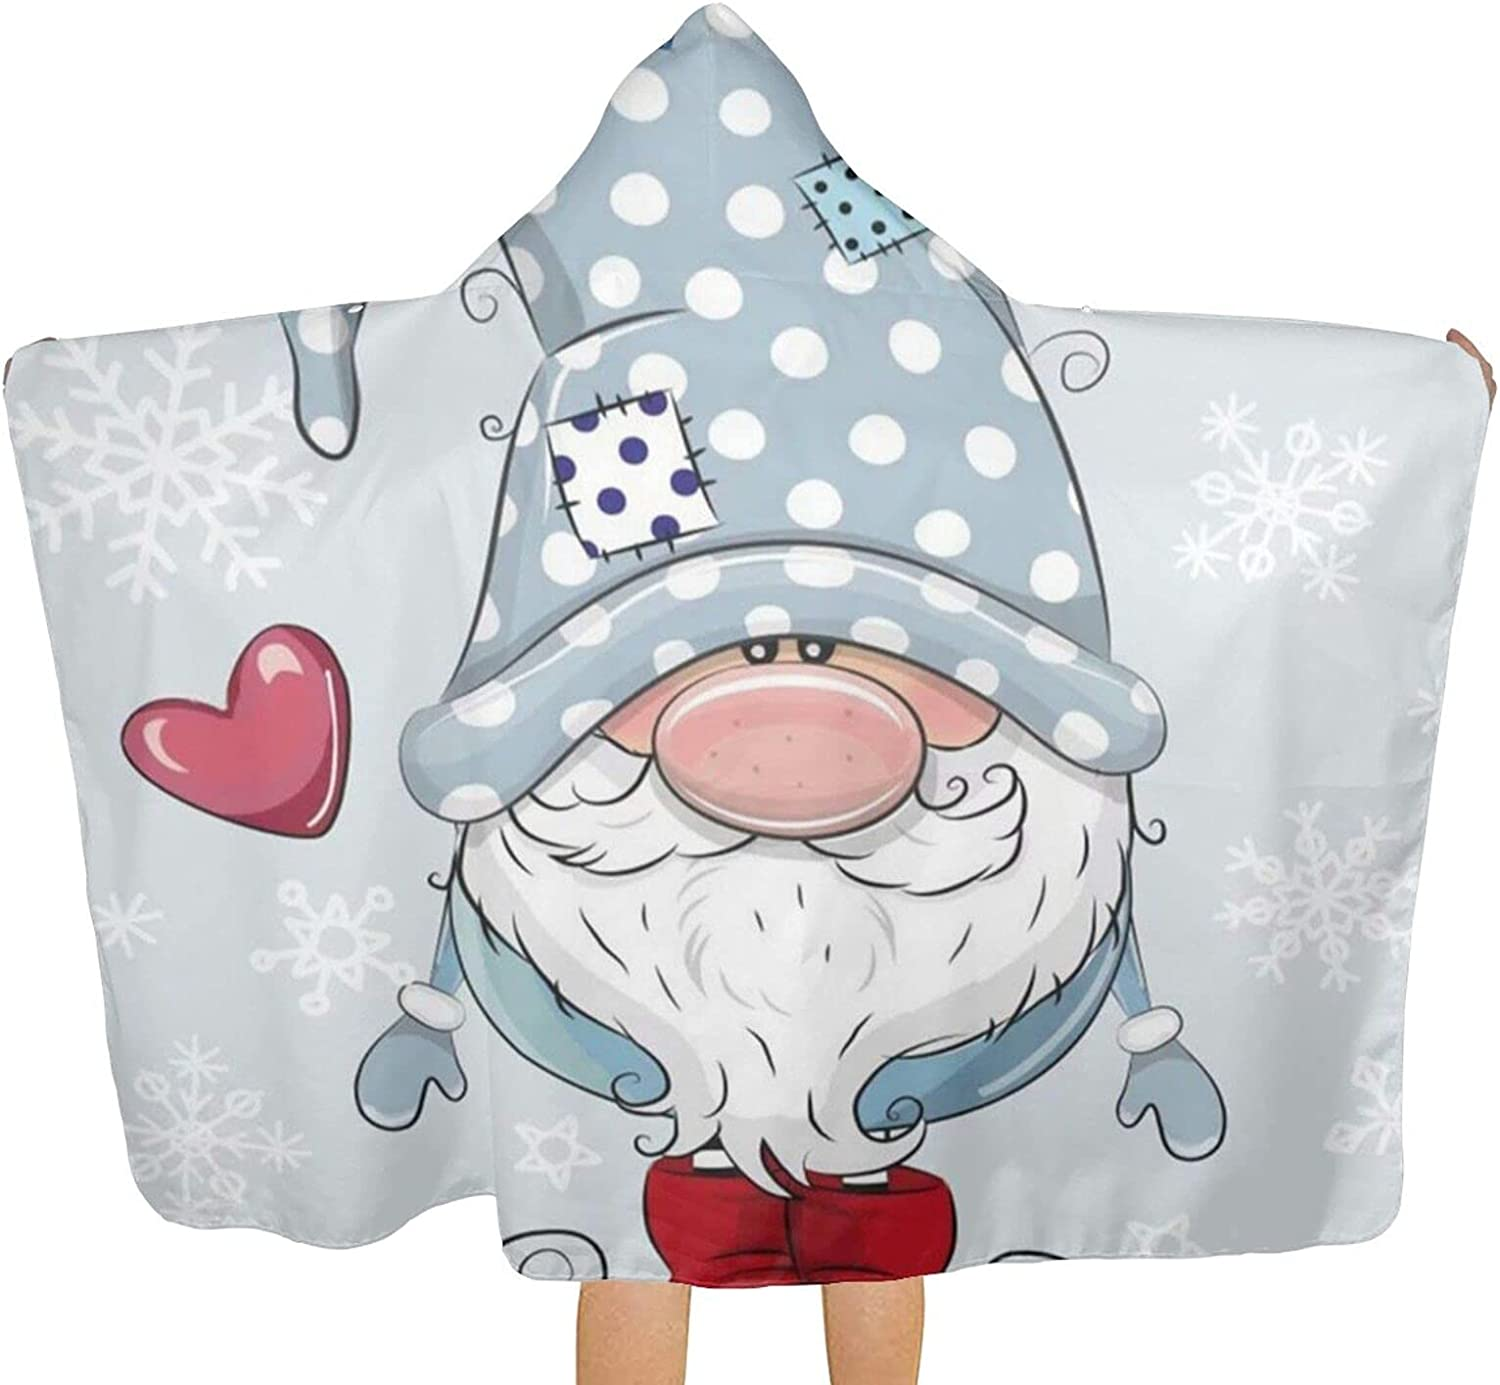 MESCCHSK Cute Gnome Printed Beach Max 47% OFF Towel Hood Max 75% OFF fo Bath Towels with